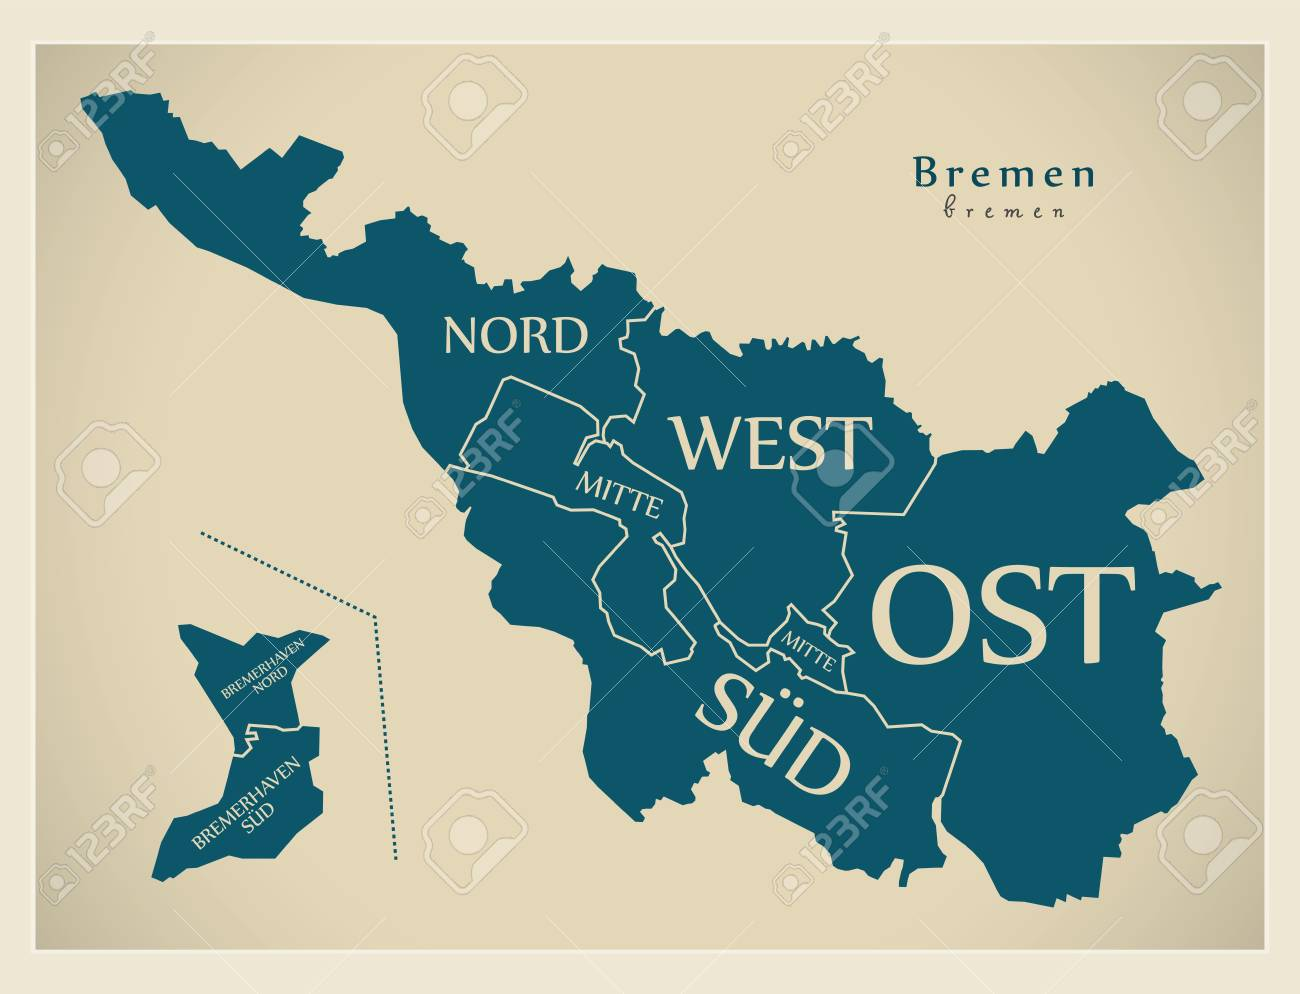 Modern City Map - Bremen city of Germany with boroughs and titles..